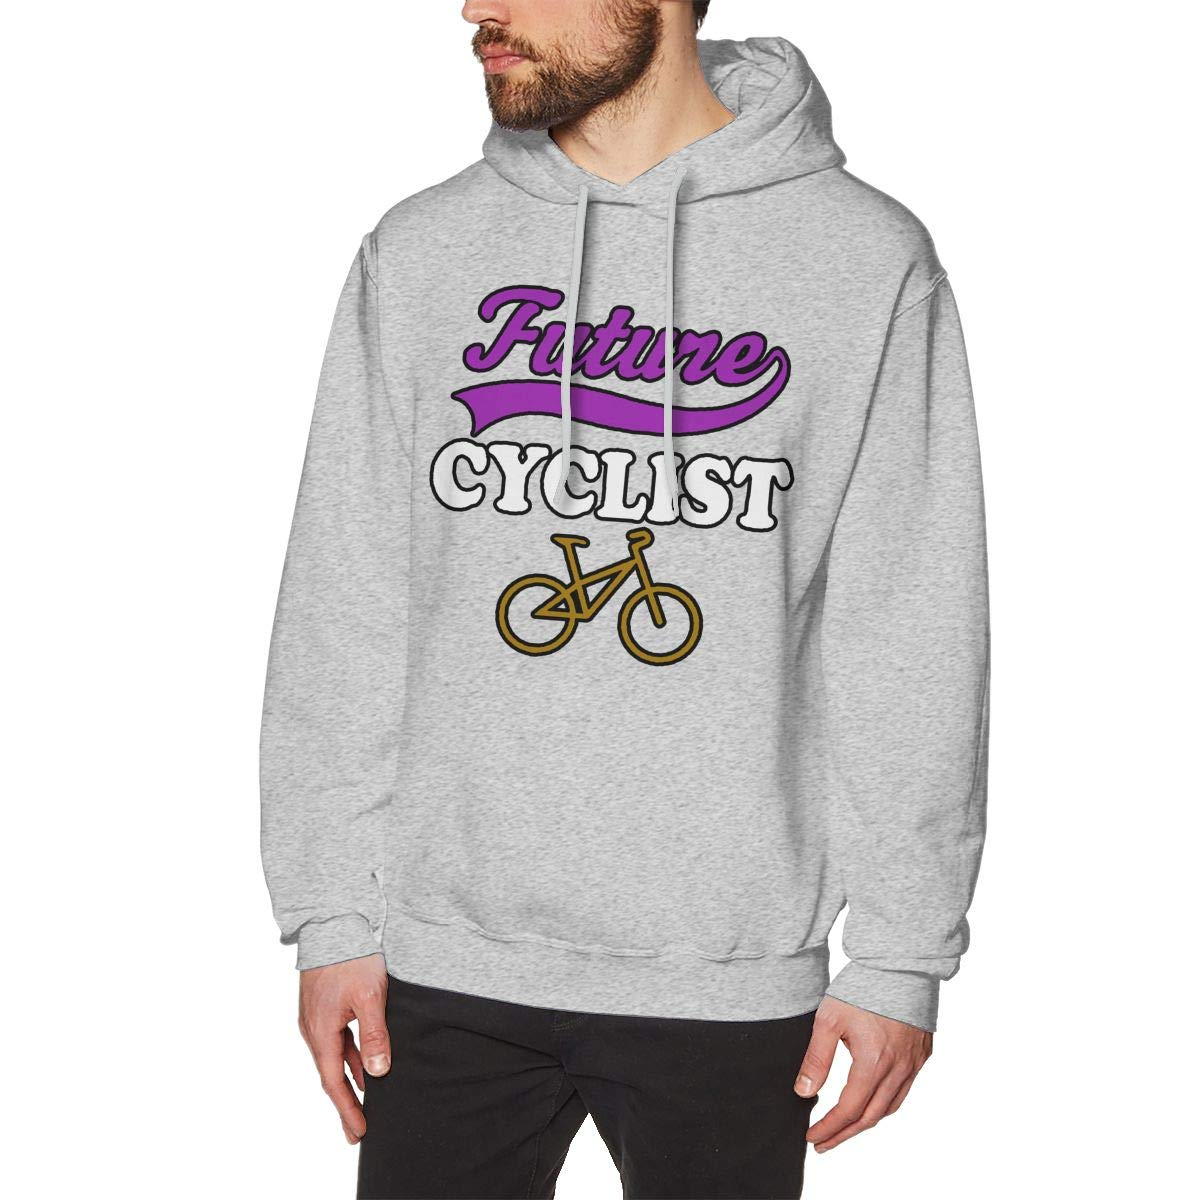 JIAU HUA Future Cyclist Mens Hooded Sweatshirt Sports 100/% Cotton Pullover Hoodie